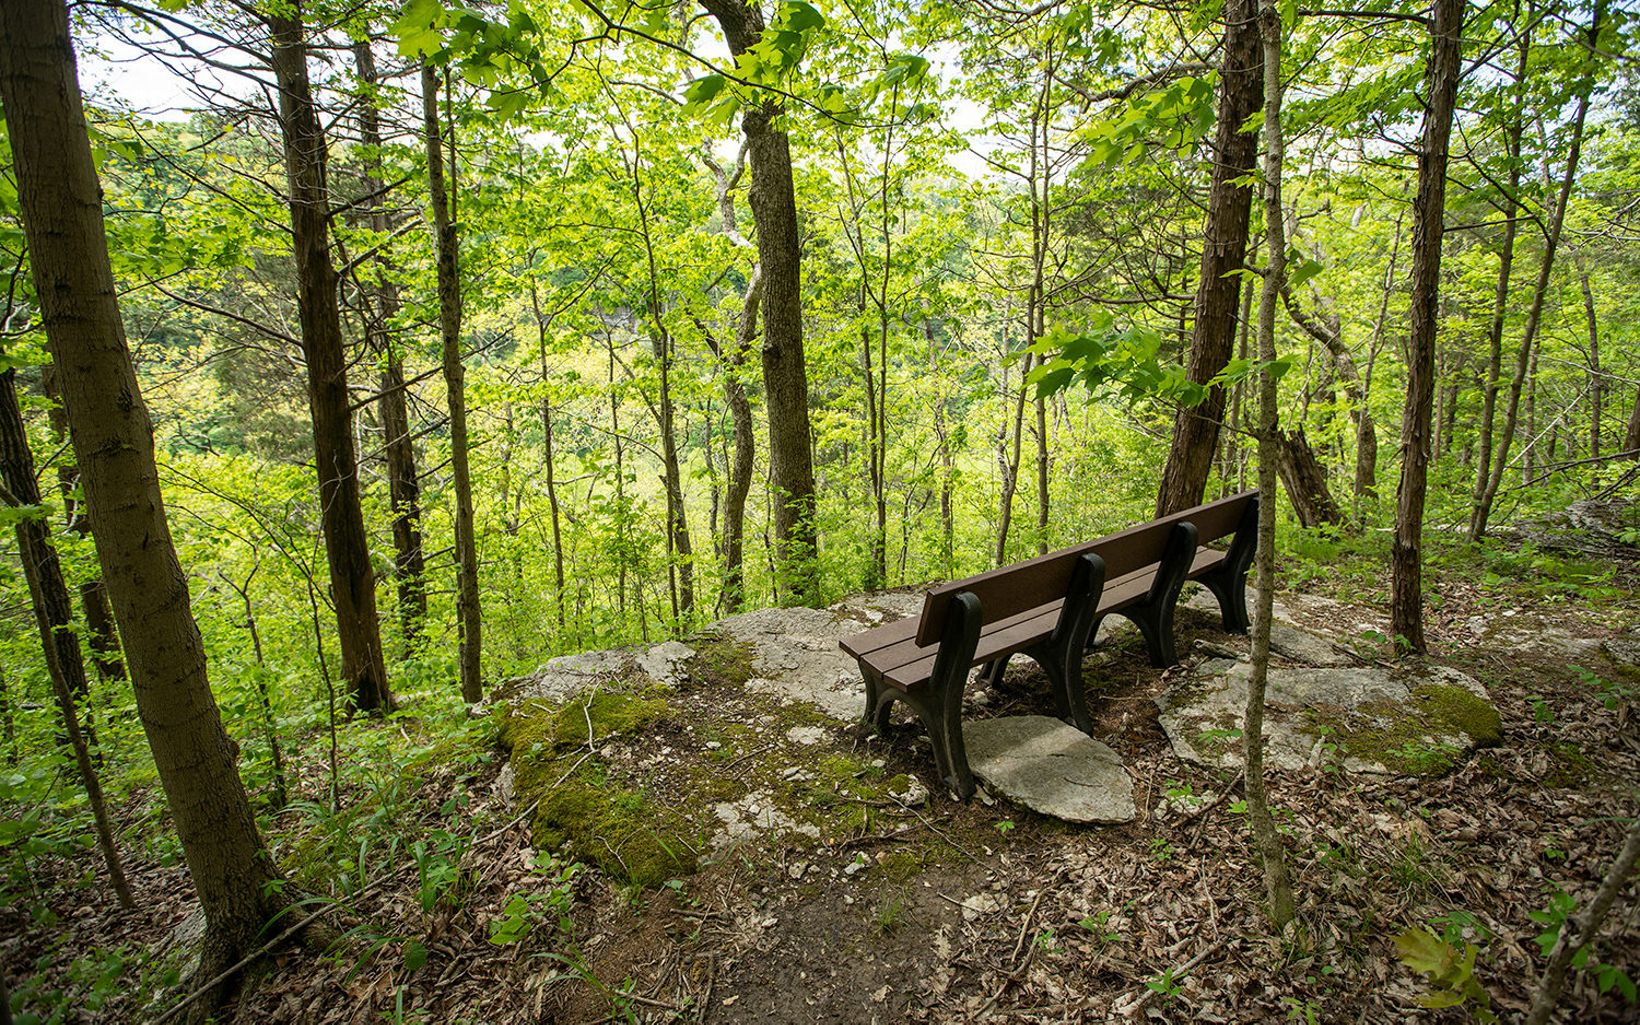 A bench sits at an overlook off the trail.